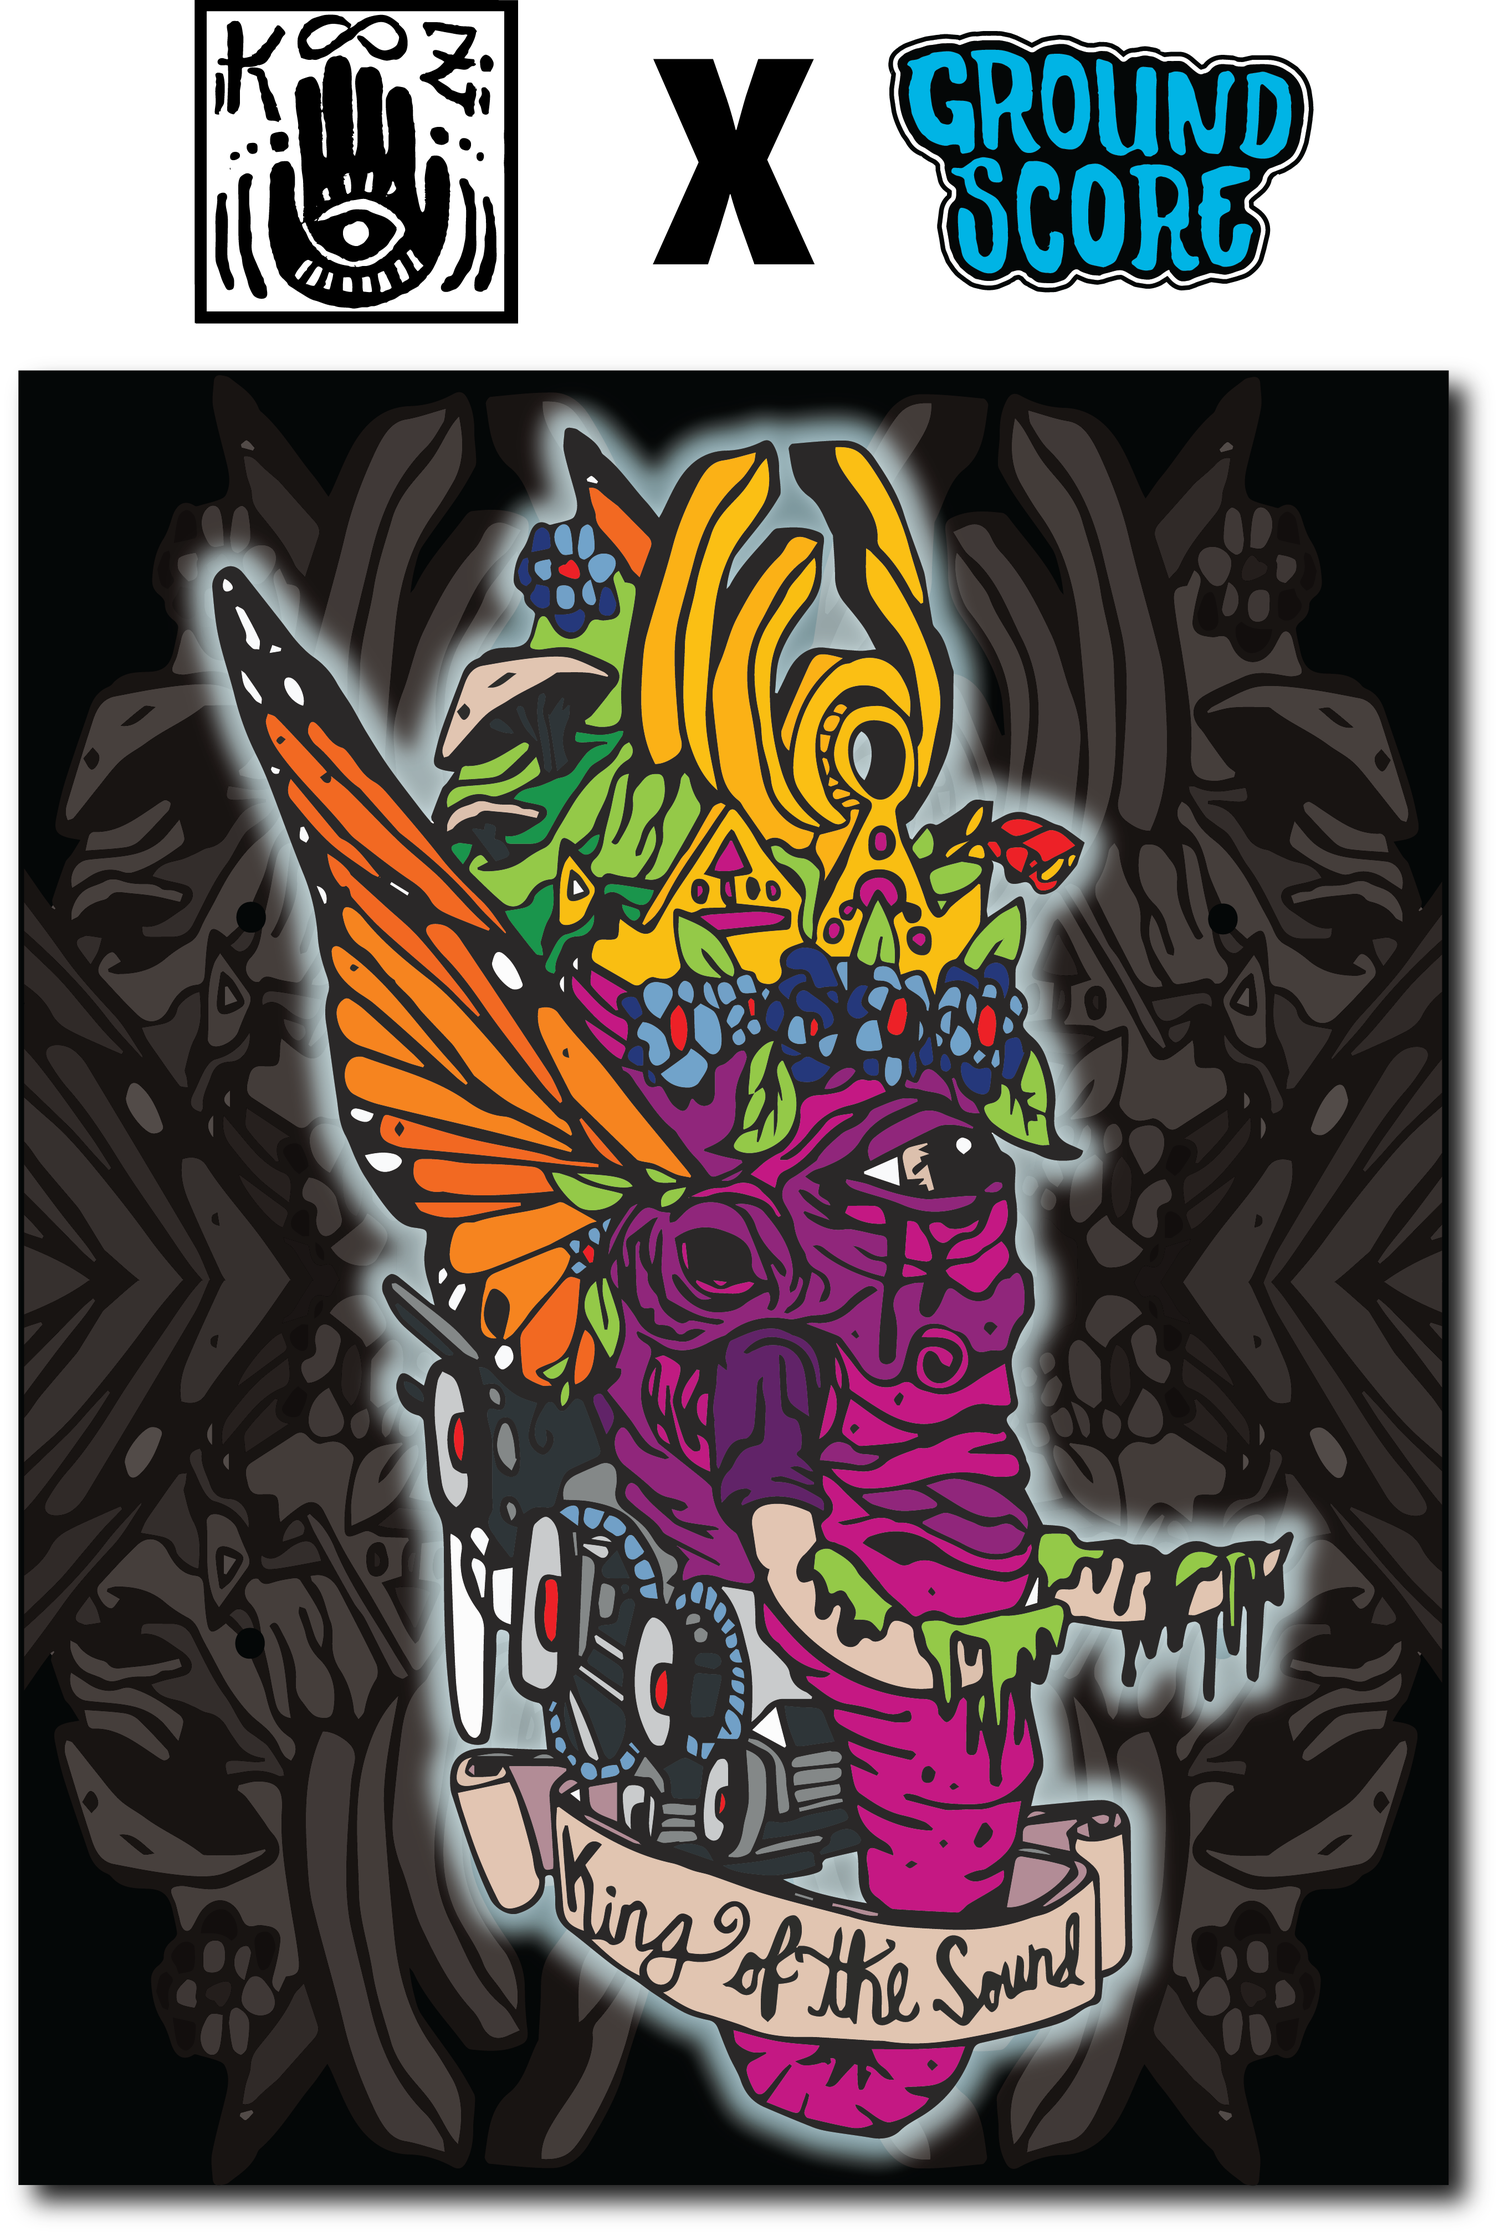 KOOZ - King of the Sound Sublimated Tapestry (LE 15)